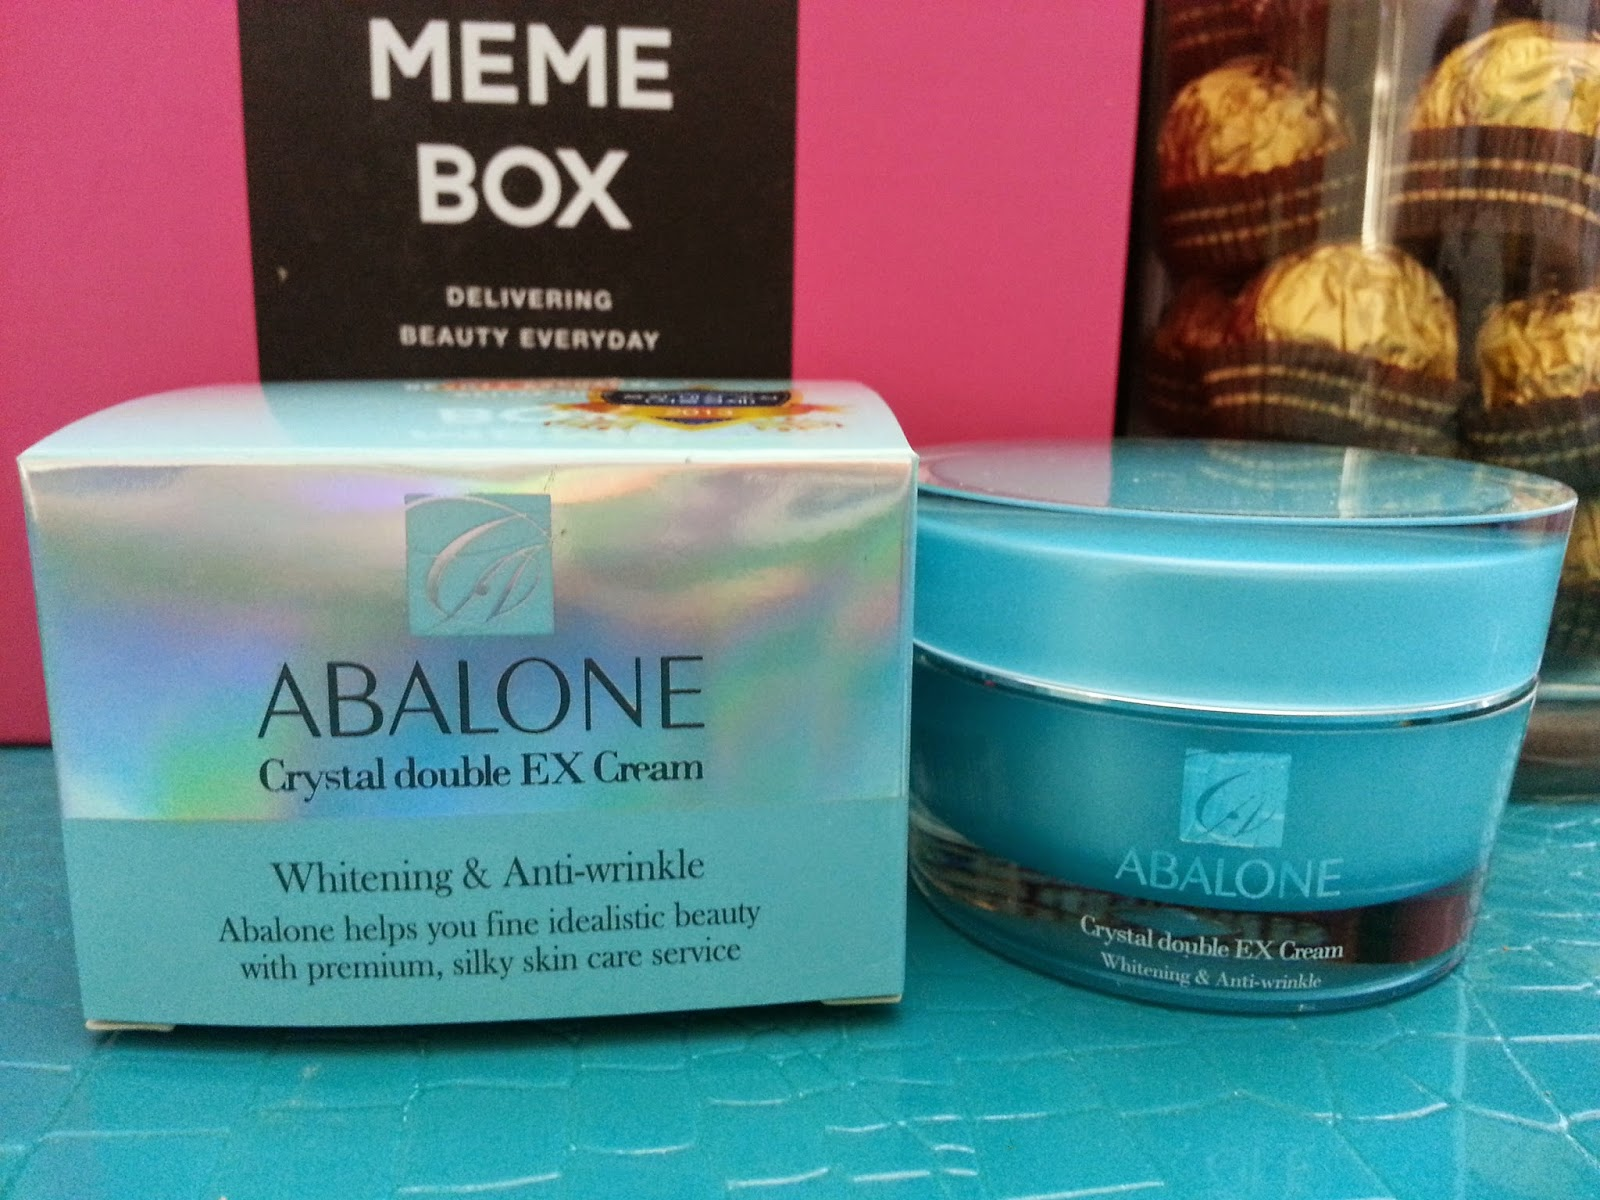 Abalone Crystal Double EX Cream